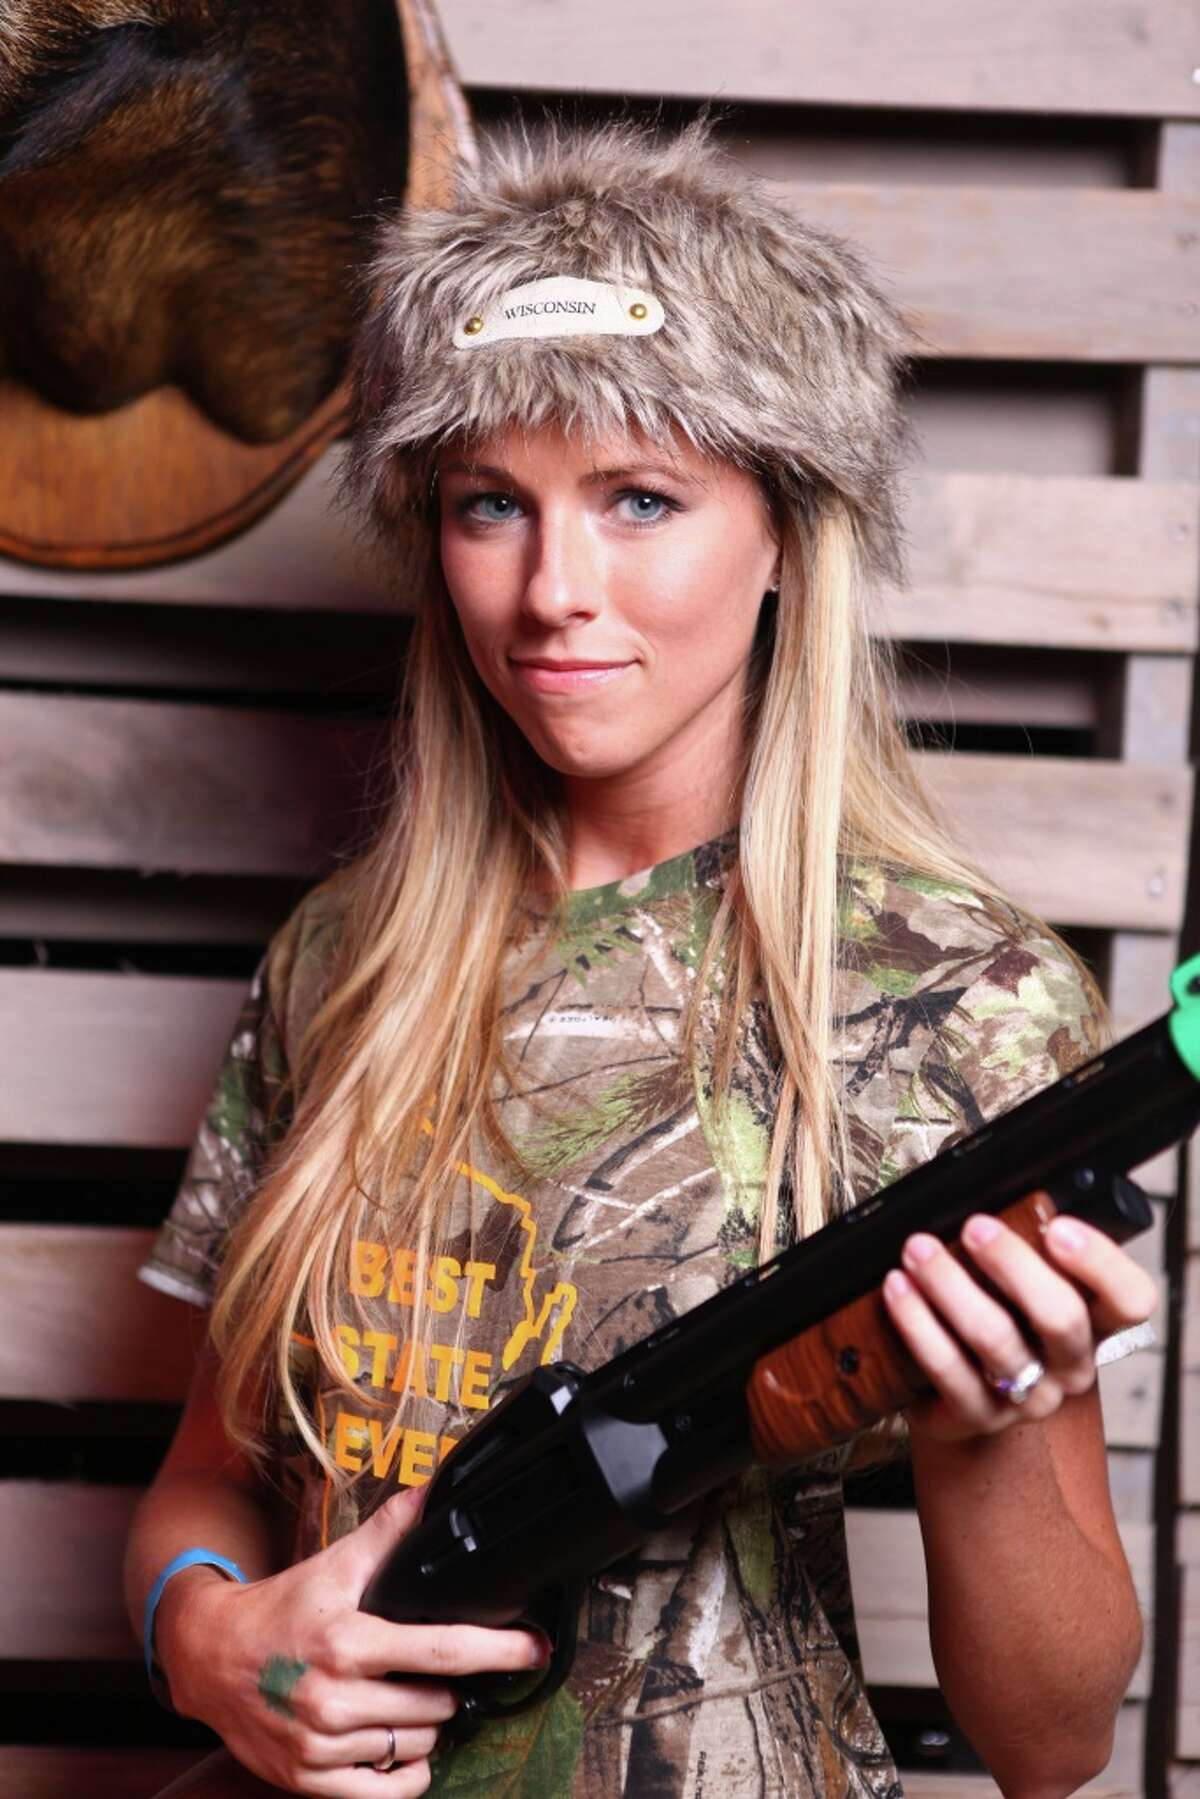 Big Buck Hunter video game 2011 and 2012 Ladies World Champion Sara Erlandson is prepared to defend her title at Stats Sports Bar.